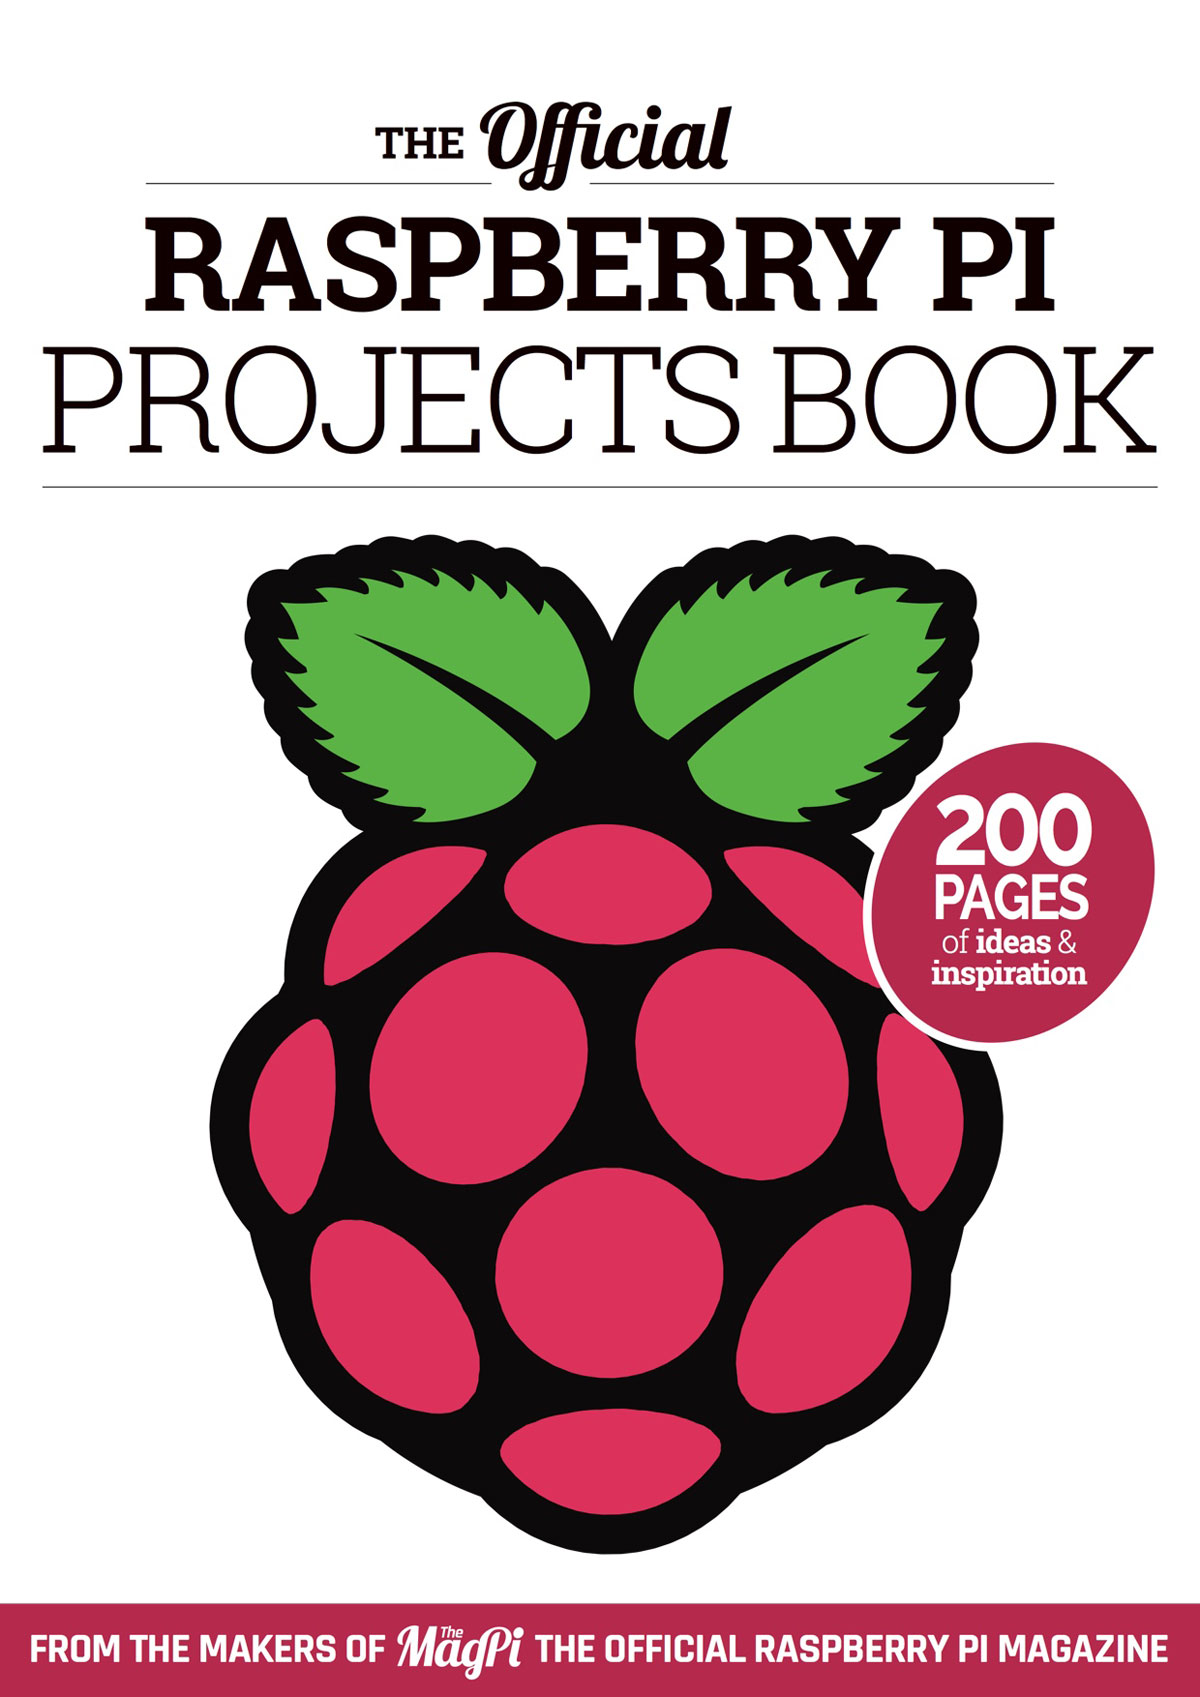 the-officla-raspberry-pi-project-book_201511